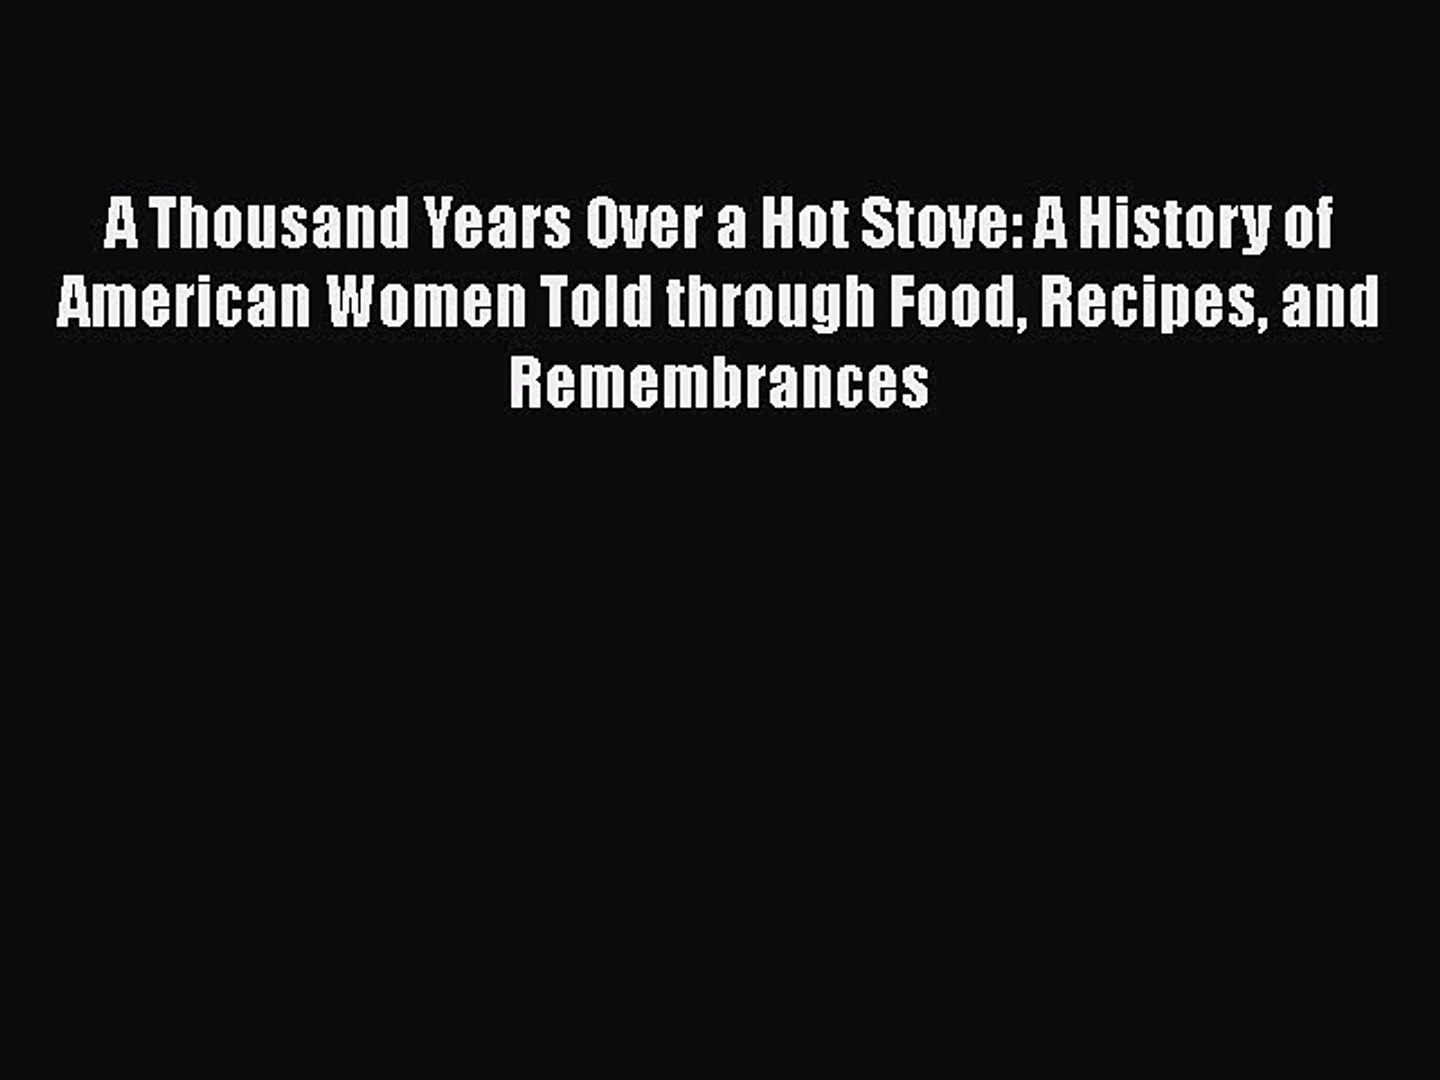 [PDF] A Thousand Years Over a Hot Stove: A History of American Women Told through Food Recipes